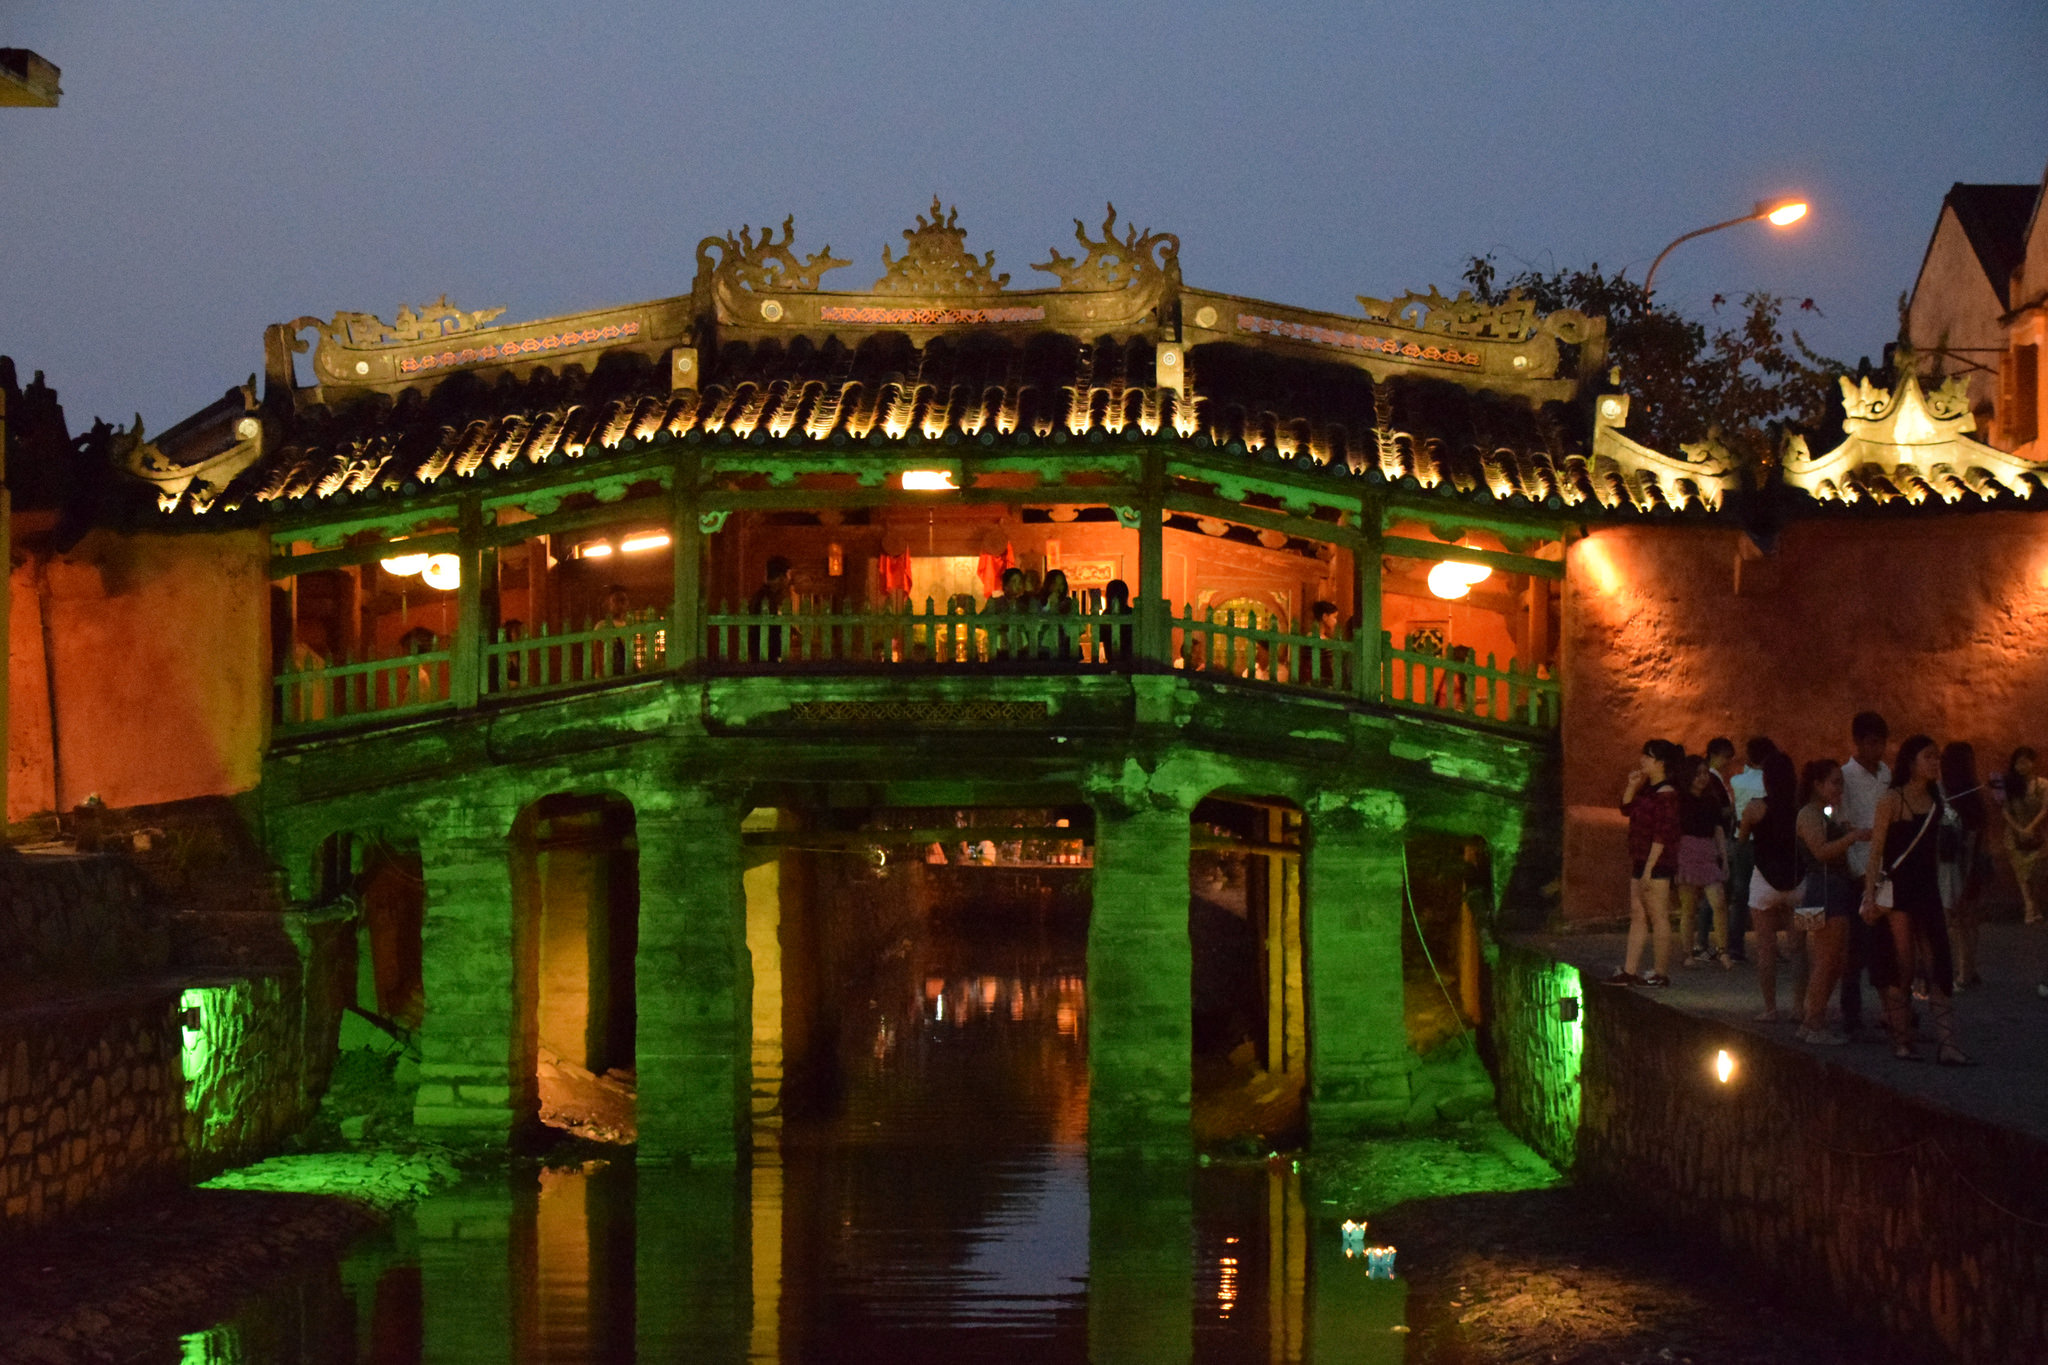 Japanese Bridge, Hoi An, Vietnam | © Paul Mannix/Flickr